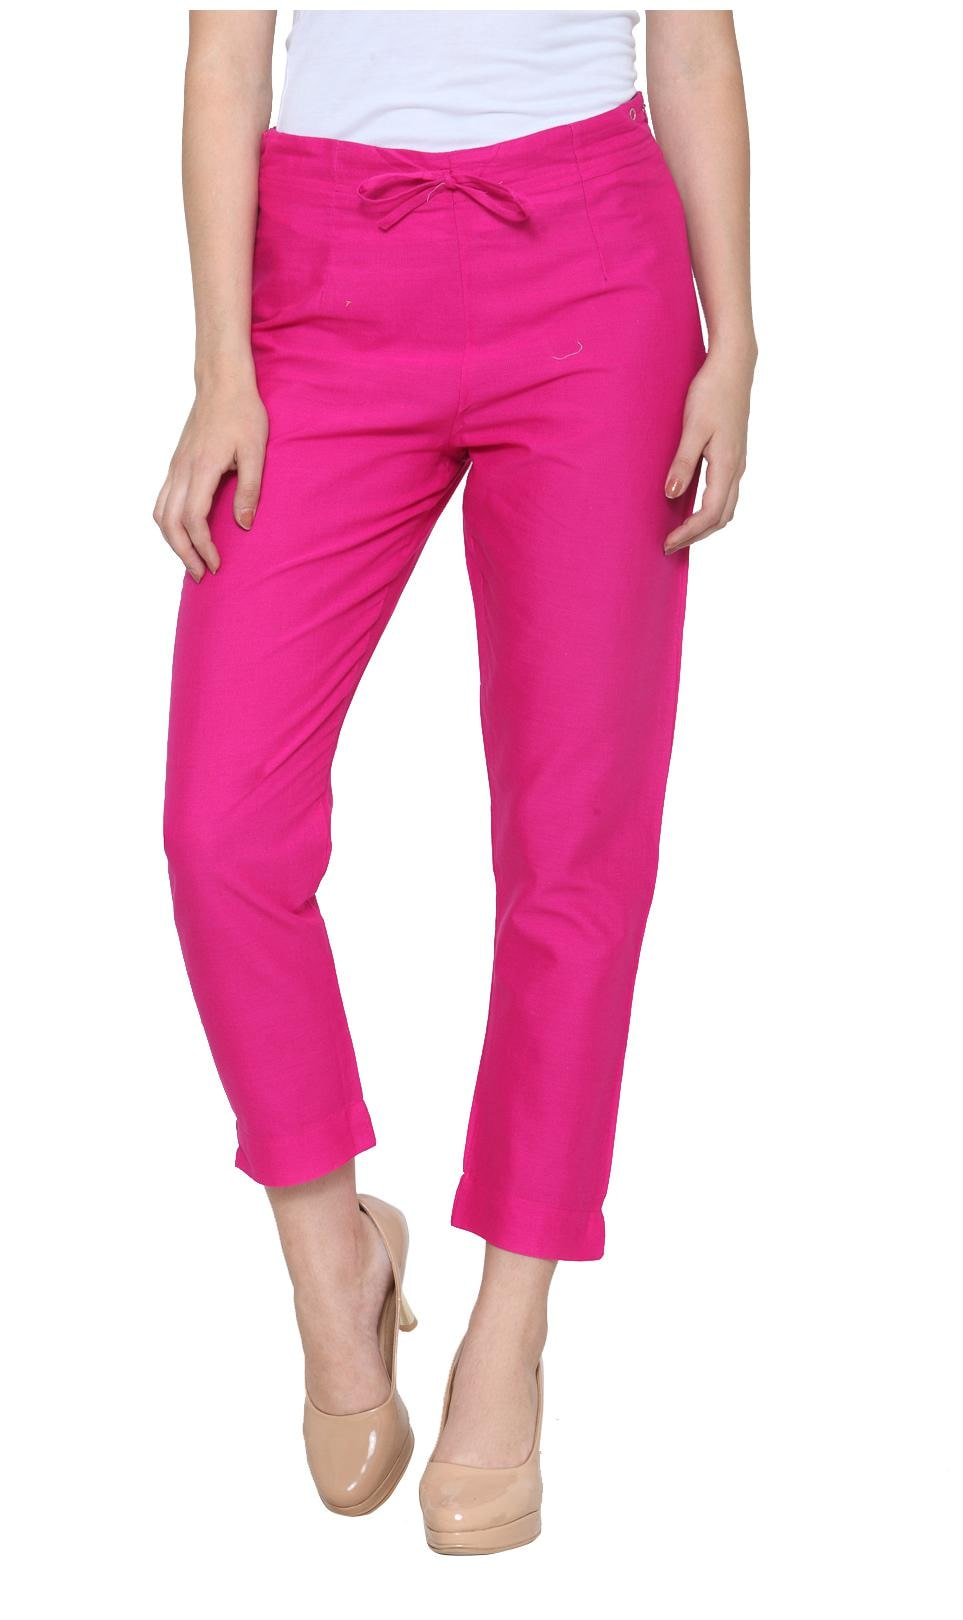 https://assetscdn1.paytm.com/images/catalog/product/A/AP/APPPINK-CASUAL-SATS95719718EBBD50/a_0..jpg